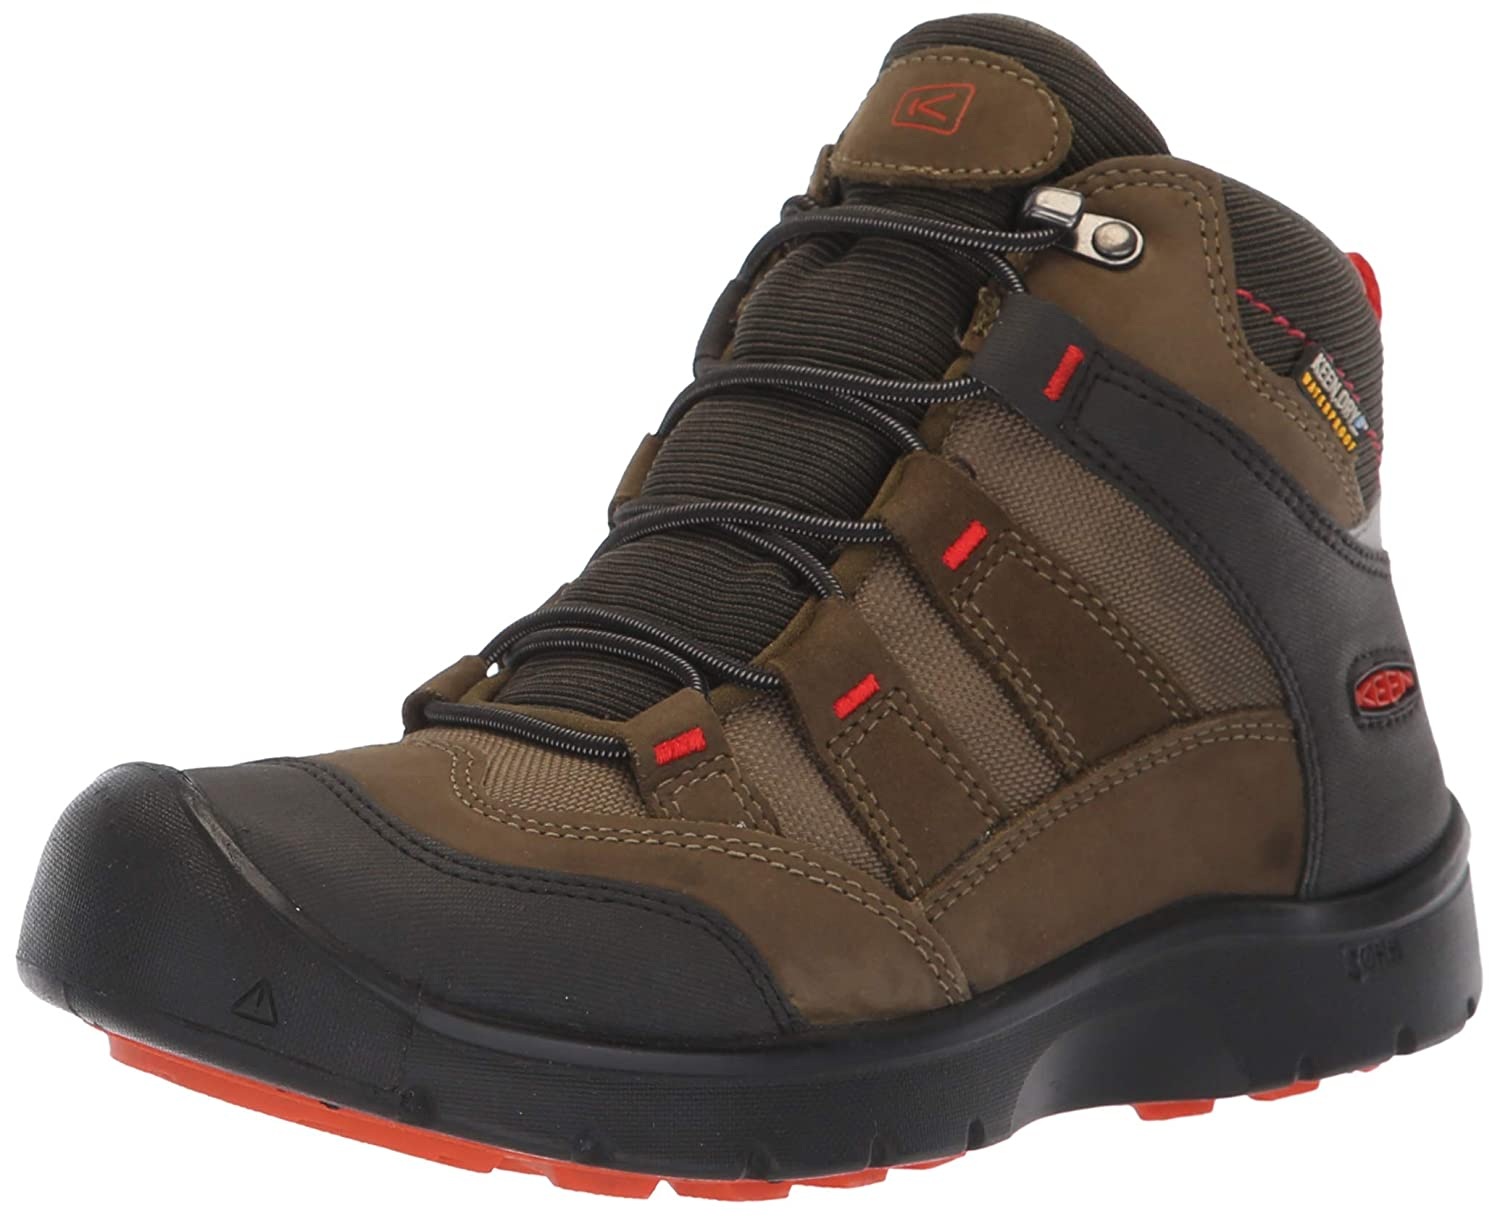 KEEN Kids' HIKEPORT MID WP Hiking Boot HIKEPORT MID WP - K